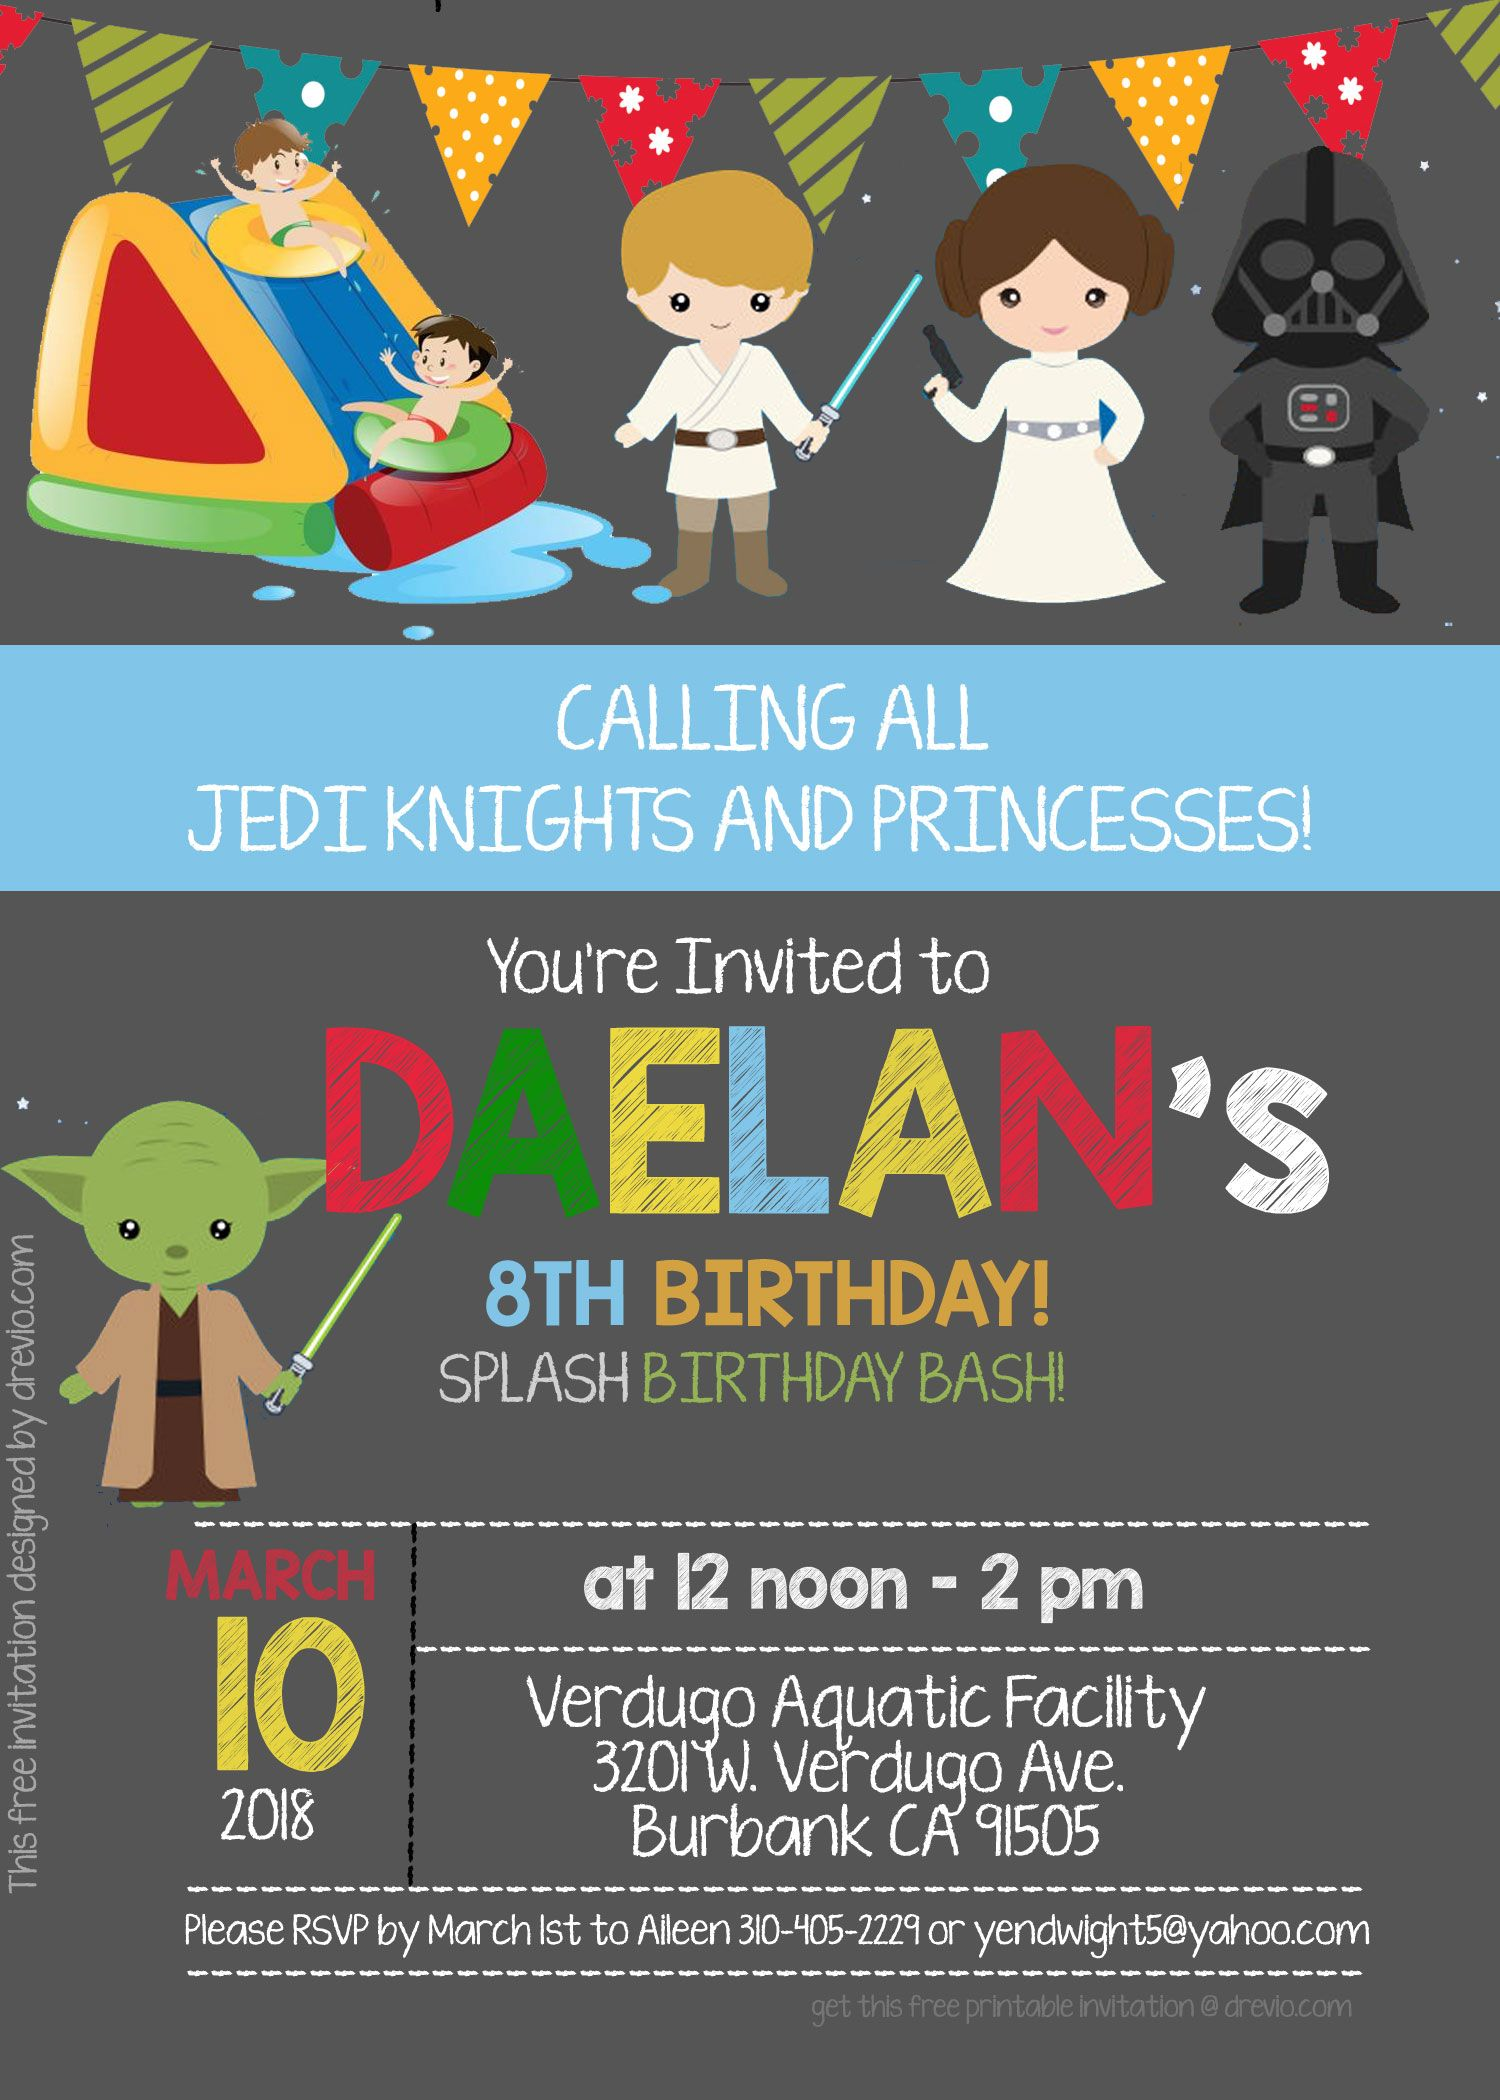 Get FREE Star Wars Pool Party Invitation Template